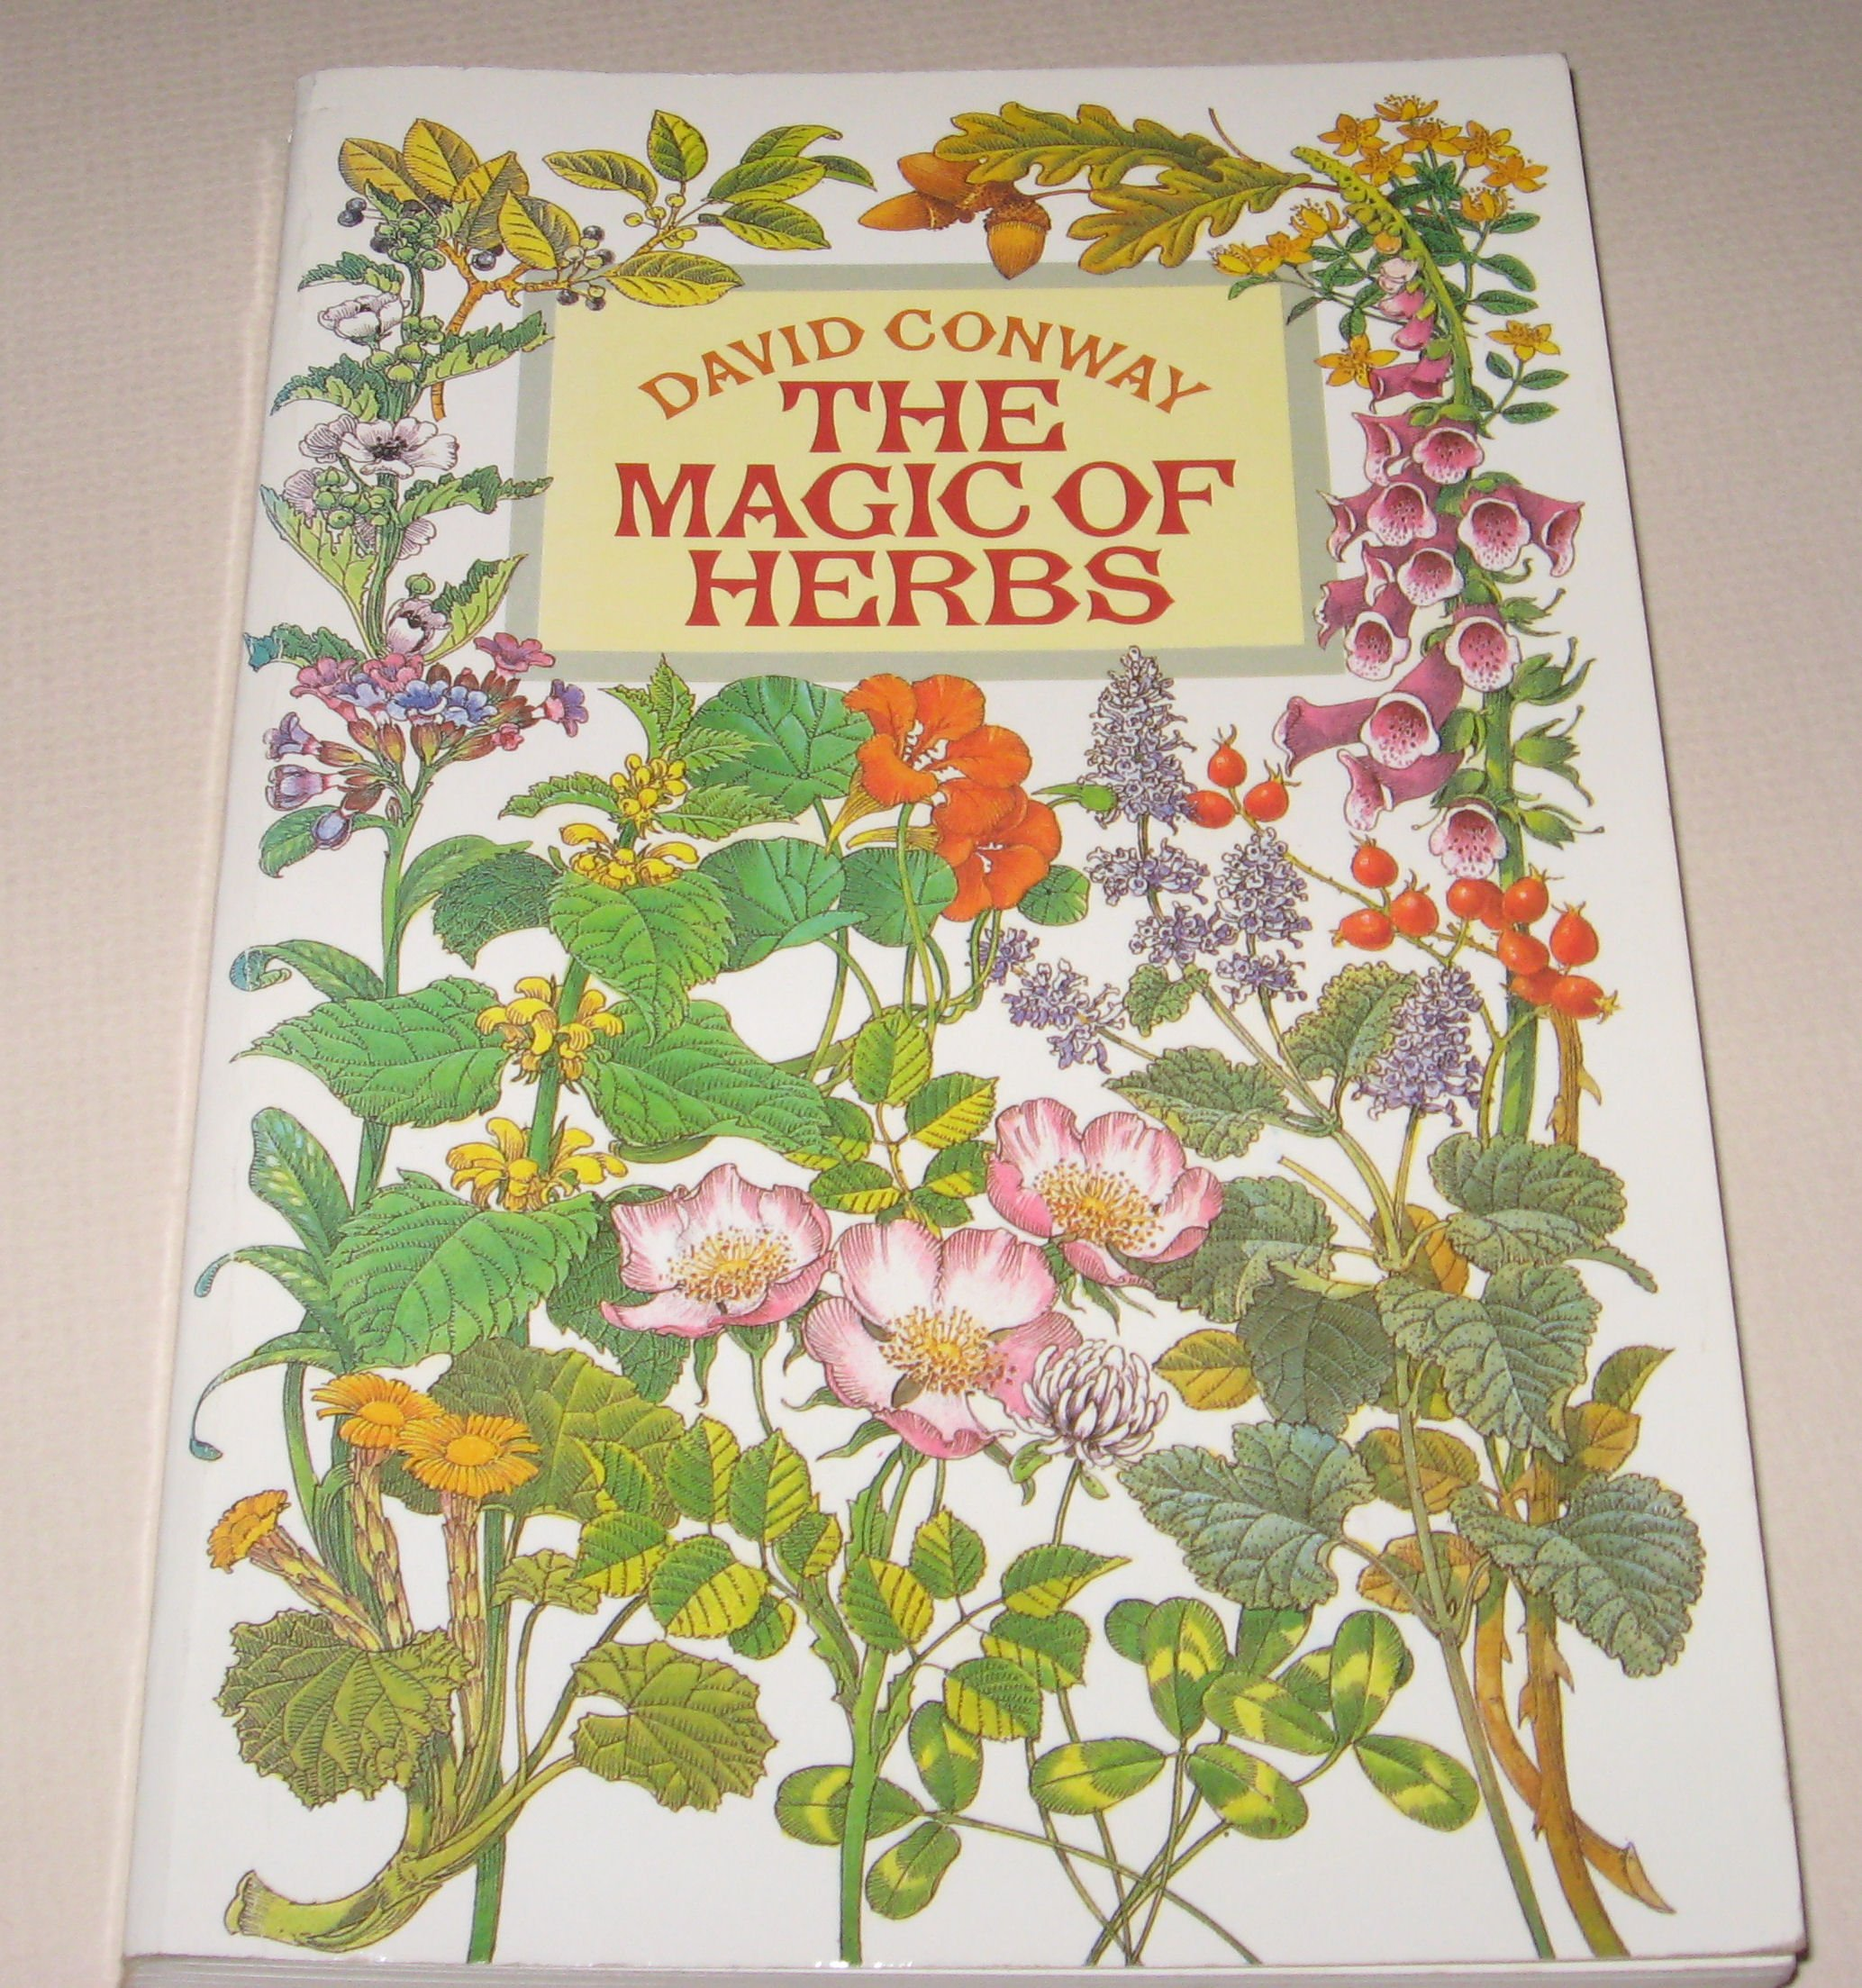 Magic of Herbs (Mayflower occult books), DAVID CONWAY